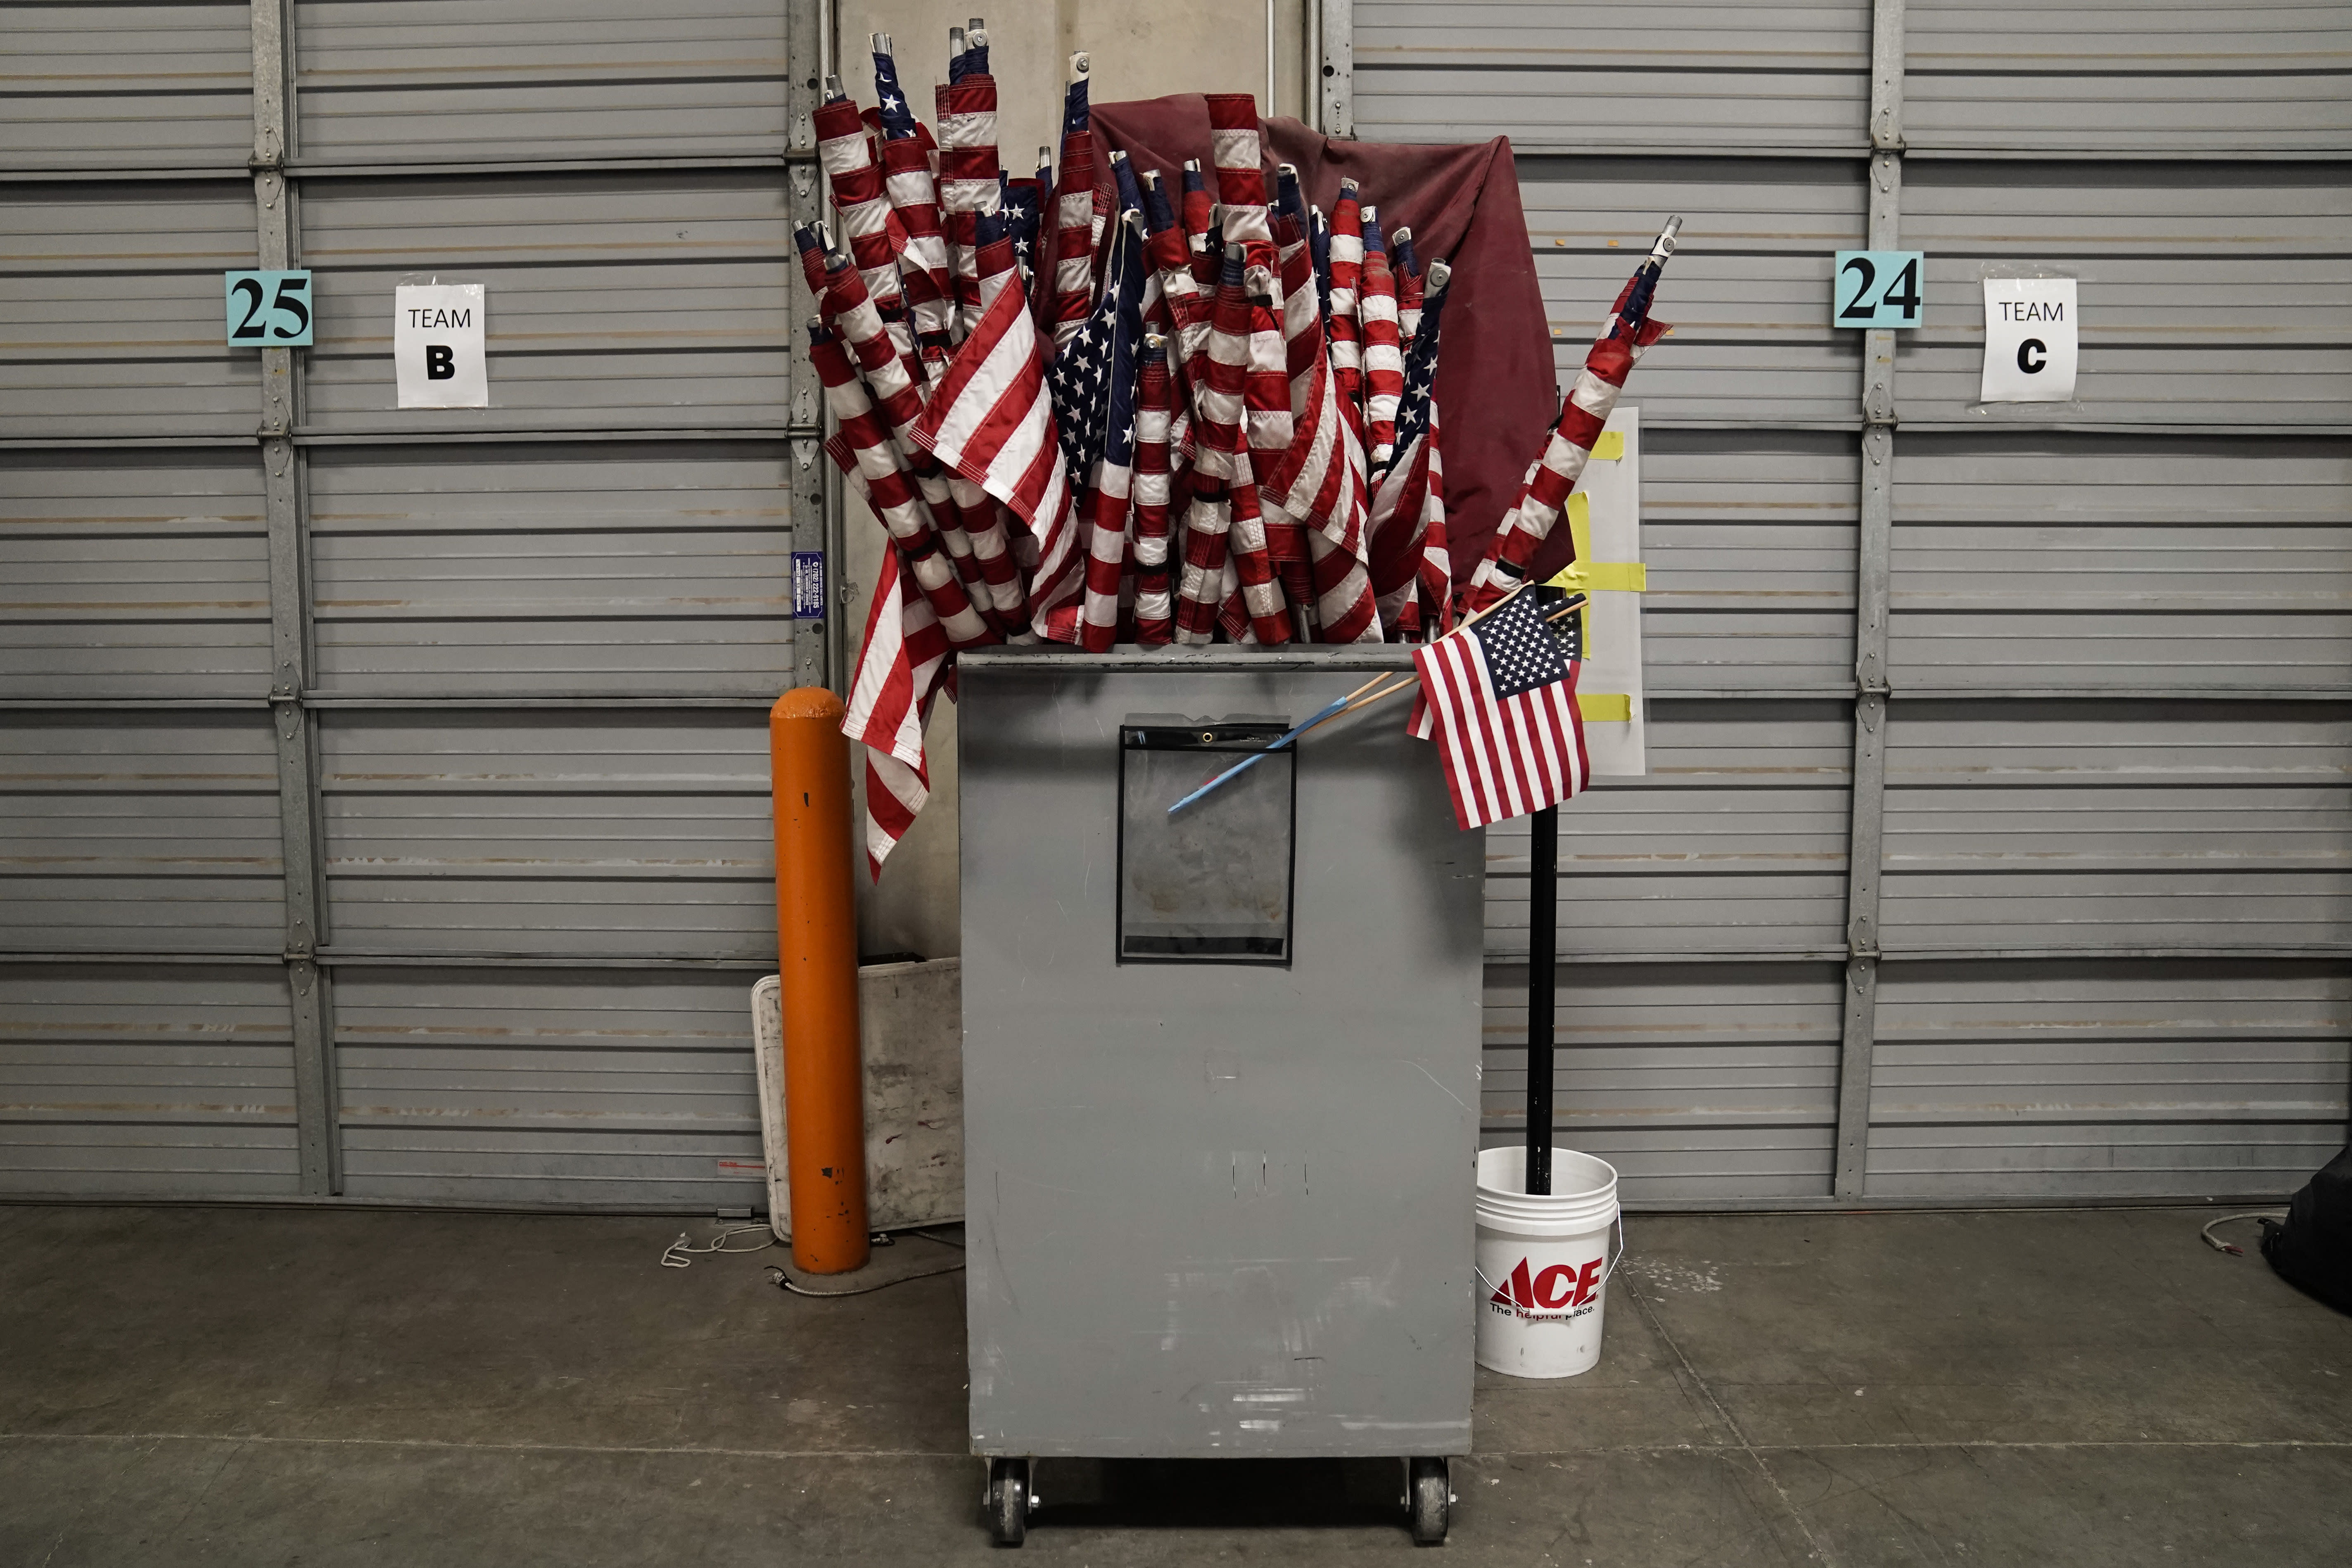 American flags used on Election Day are stored at the Clark County Election Department in North Las Vegas, Nev., Friday, Nov. 6, 2020. (AP Photo/Jae C. Hong)